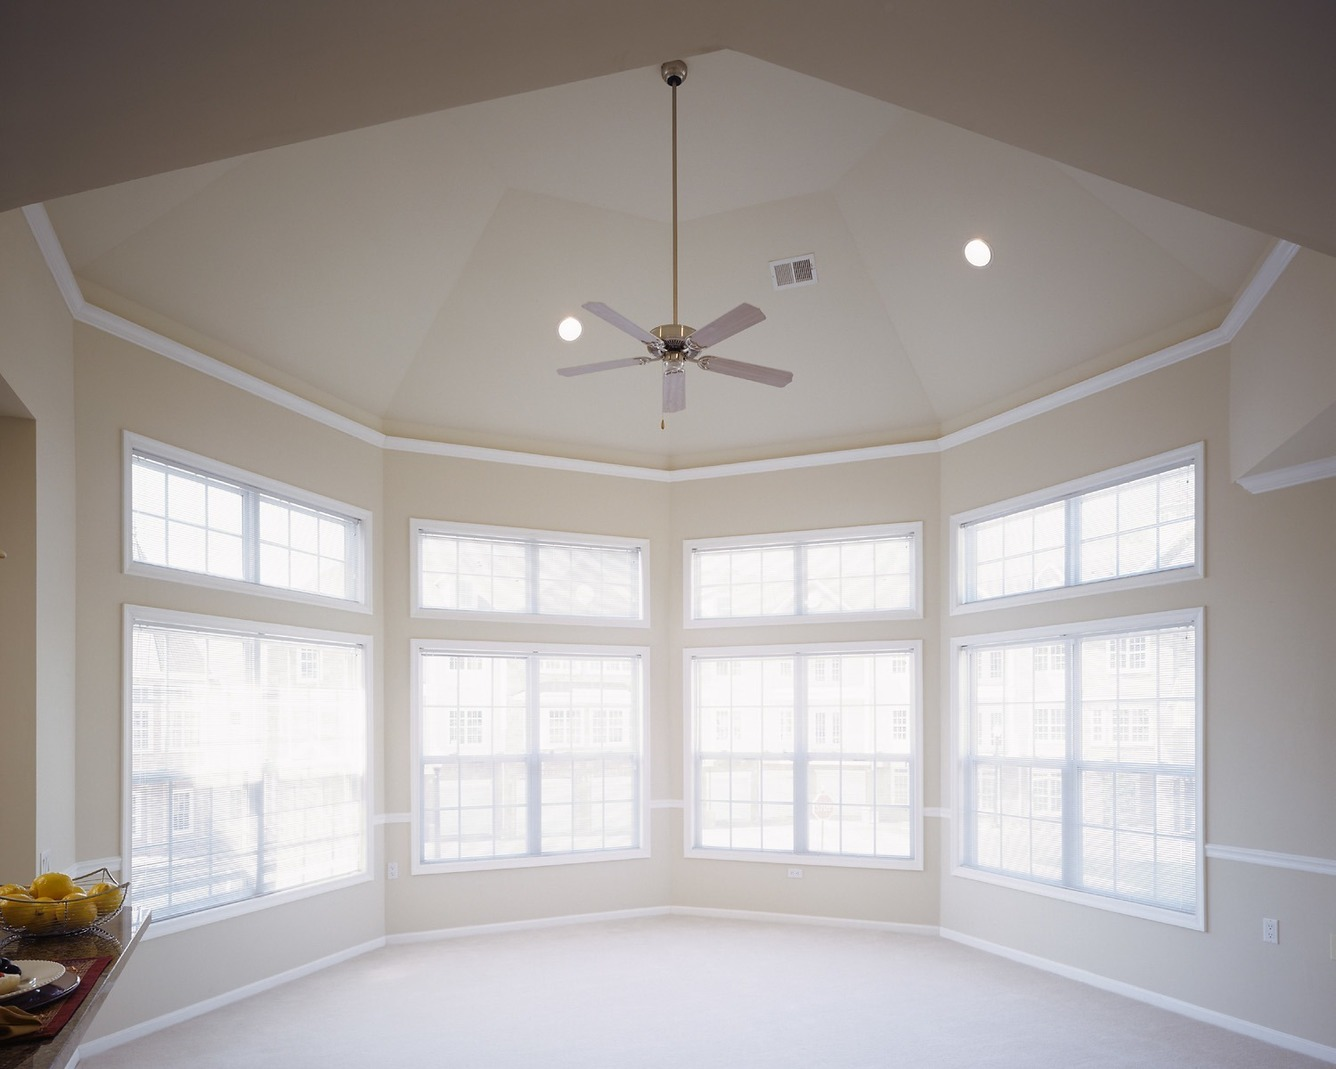 The Enclave - Ceiling Fans